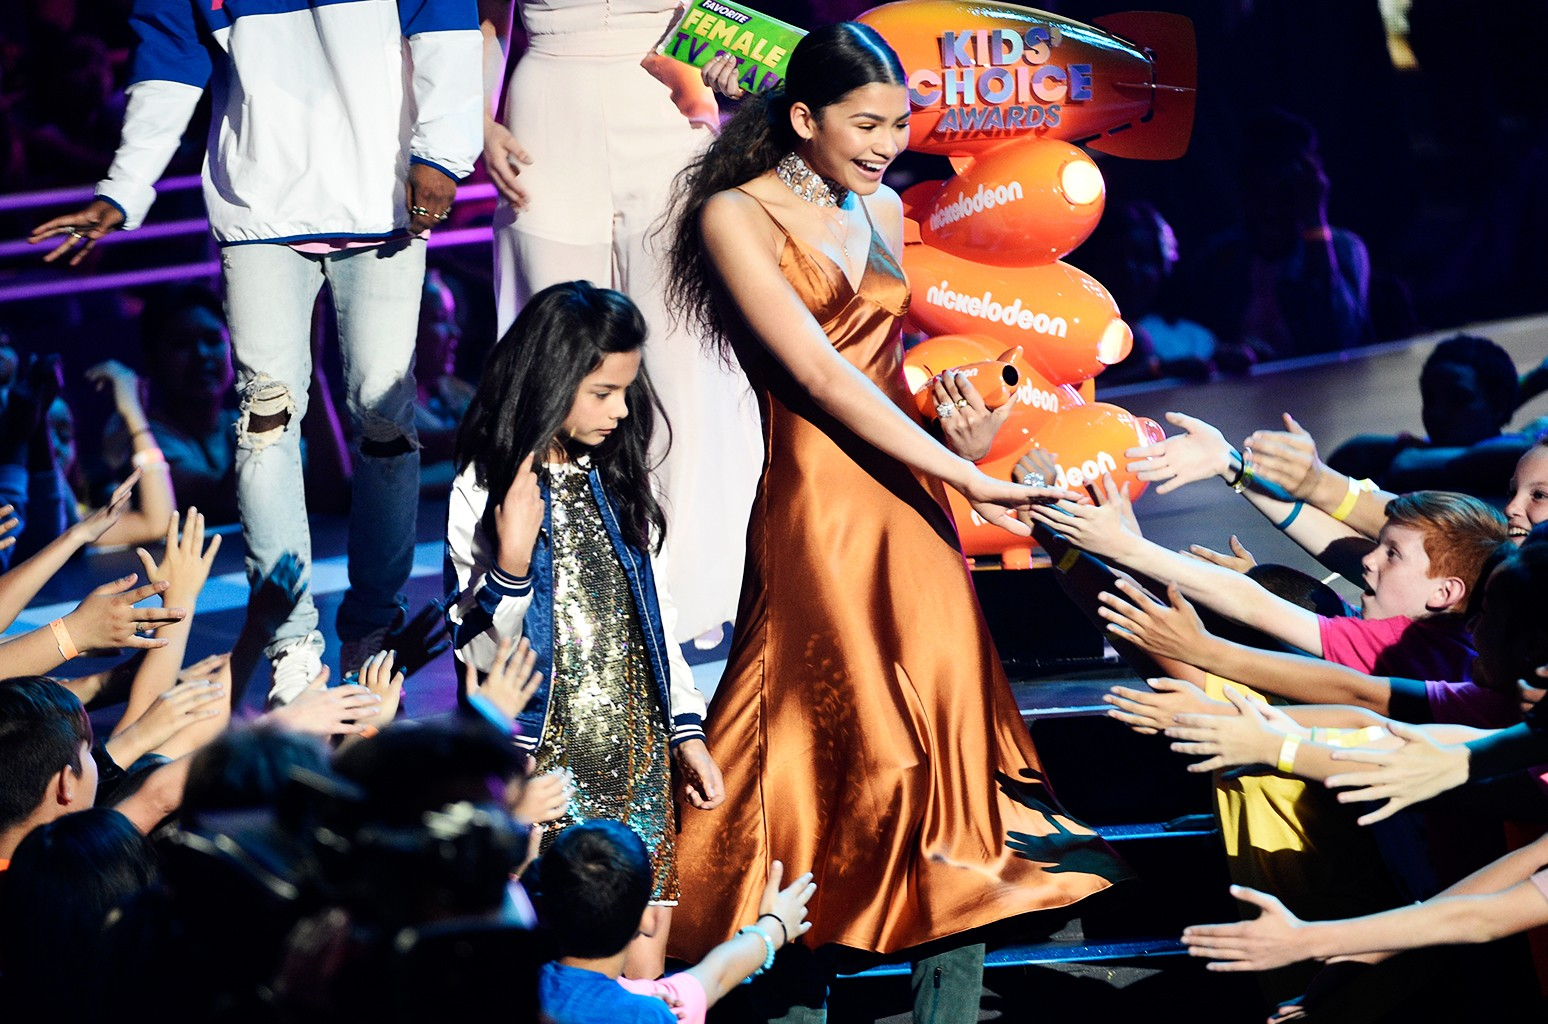 """Zendaya greets fans in the audience after accepting the award for favorite female TV star for """"K.C. Undercover"""" at the Kids' Choice Awards at the Galen Center on March 11, 2017 in Los Angeles."""